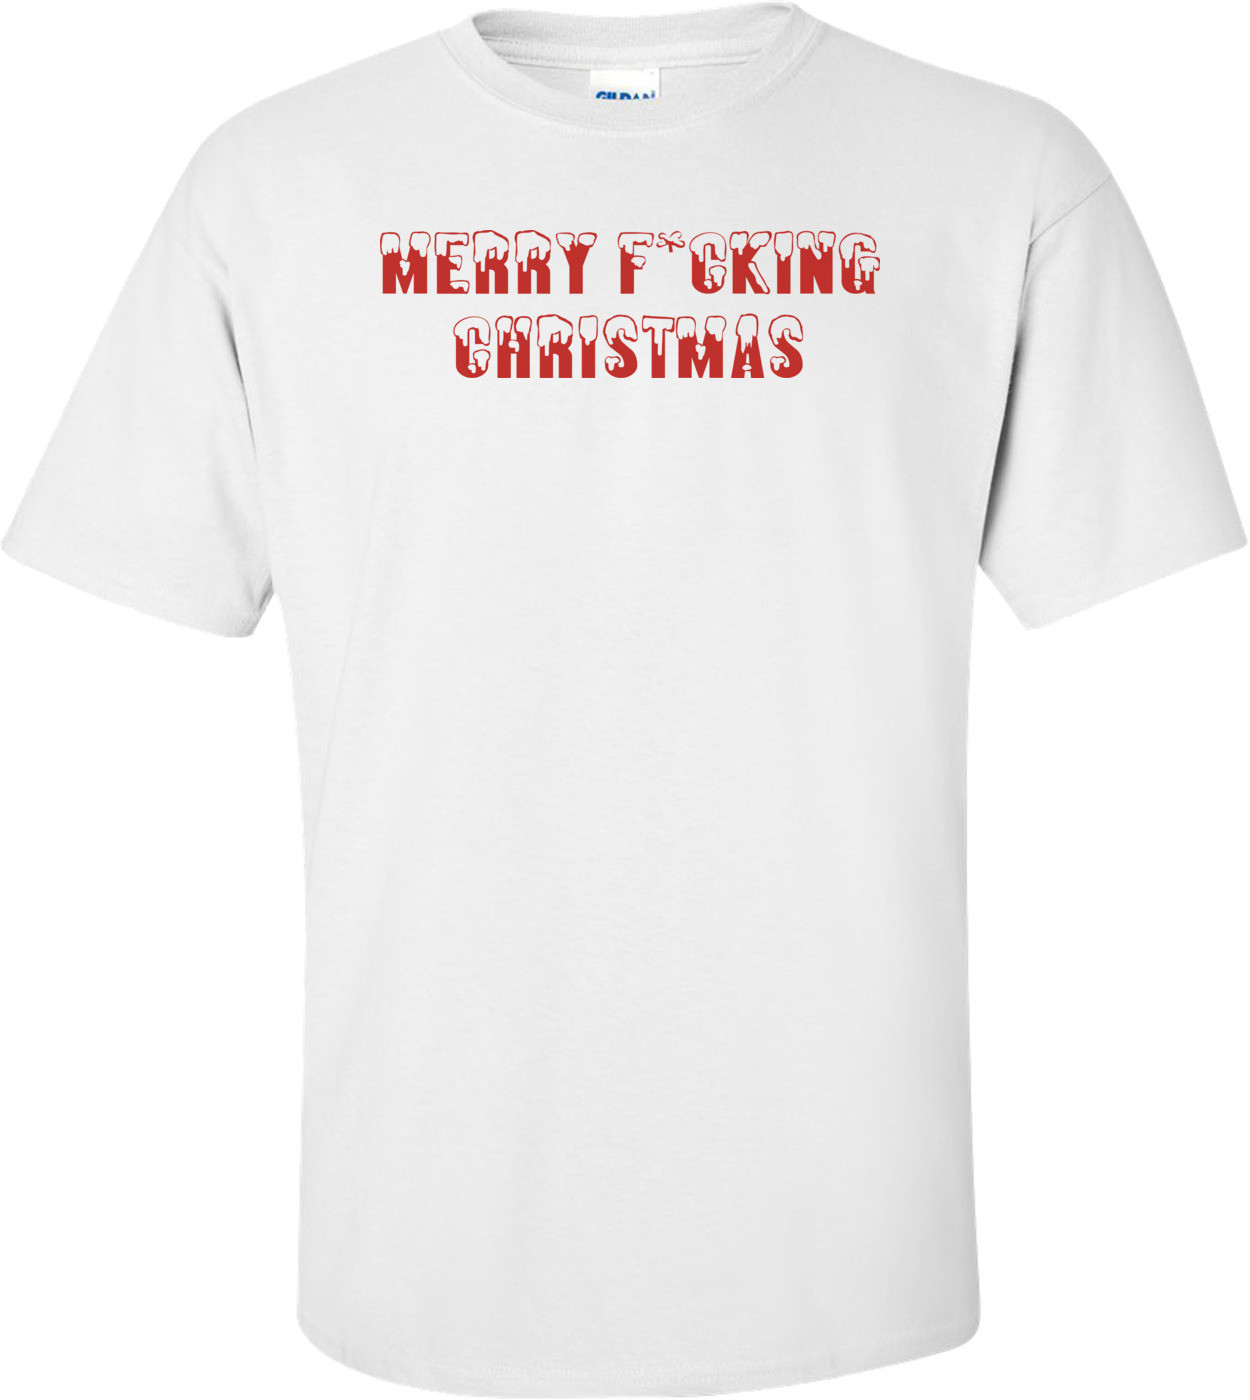 Merry F*cking Christmas T-shirt